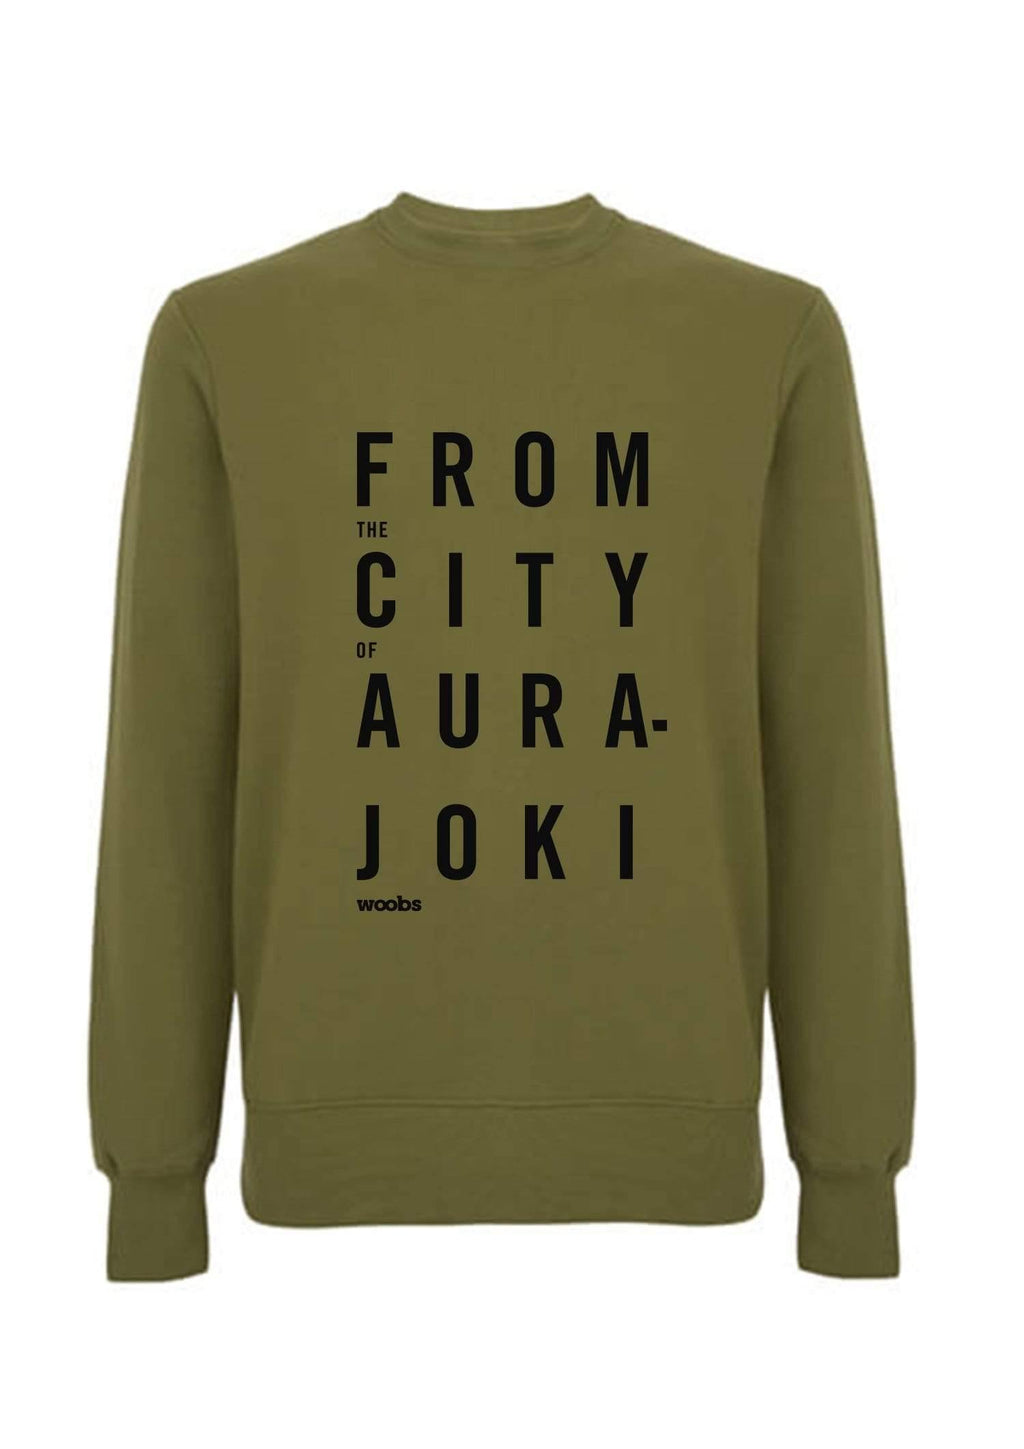 From The City Of Aurajoki, Lyric, Sweatshirt, Khaki Green, PRE-SALE